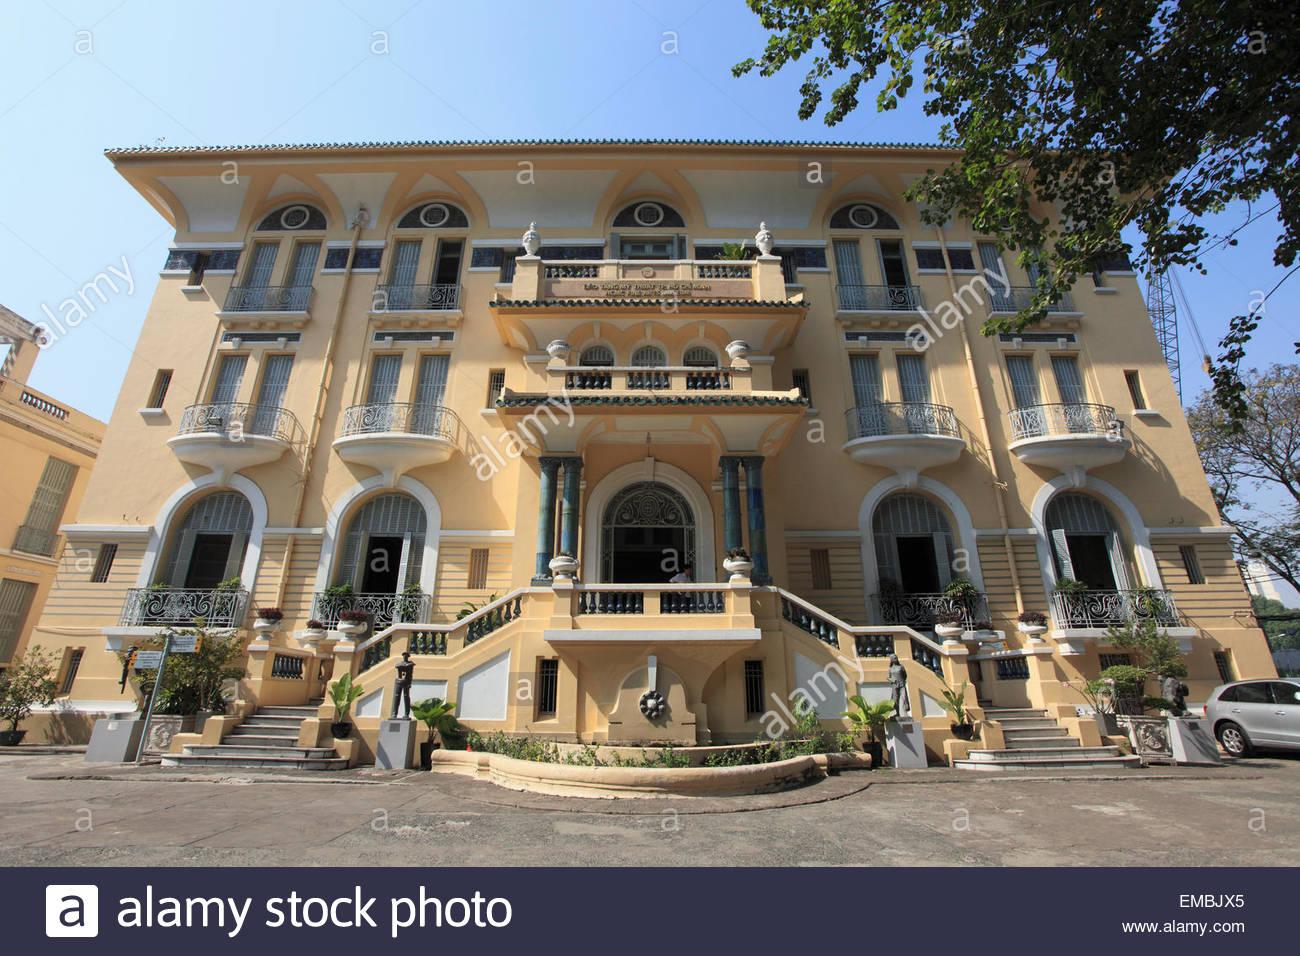 Ho Chi Minh City Fine Arts Museum Ho Chi Minh City, Vietnam, Ho Chi Minh City, Saigon, Fine Arts Museum Stock Photo ...